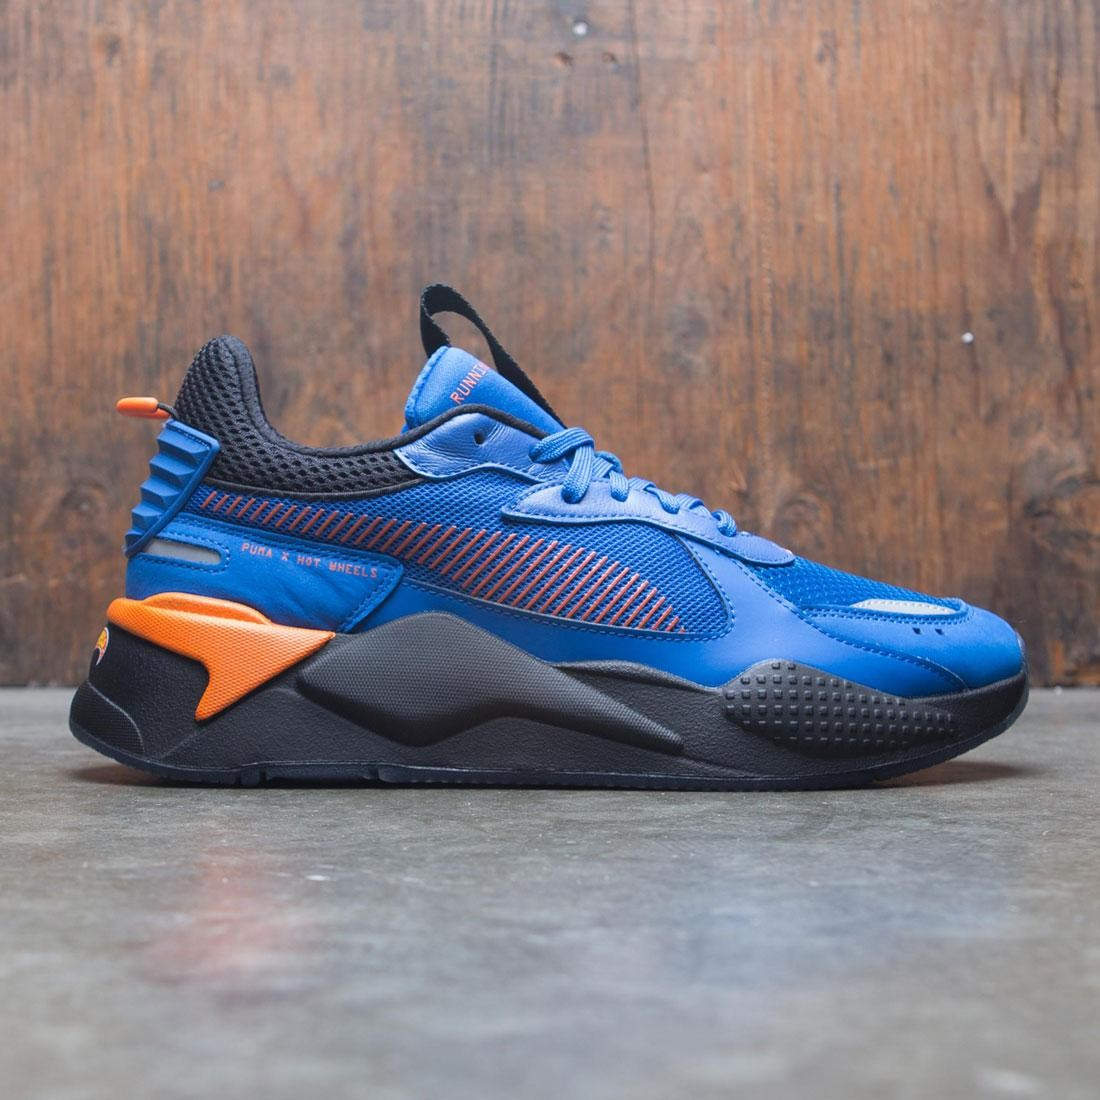 087b1d08484 Puma x Hot Wheels Men RS-X - 16 blue royal black